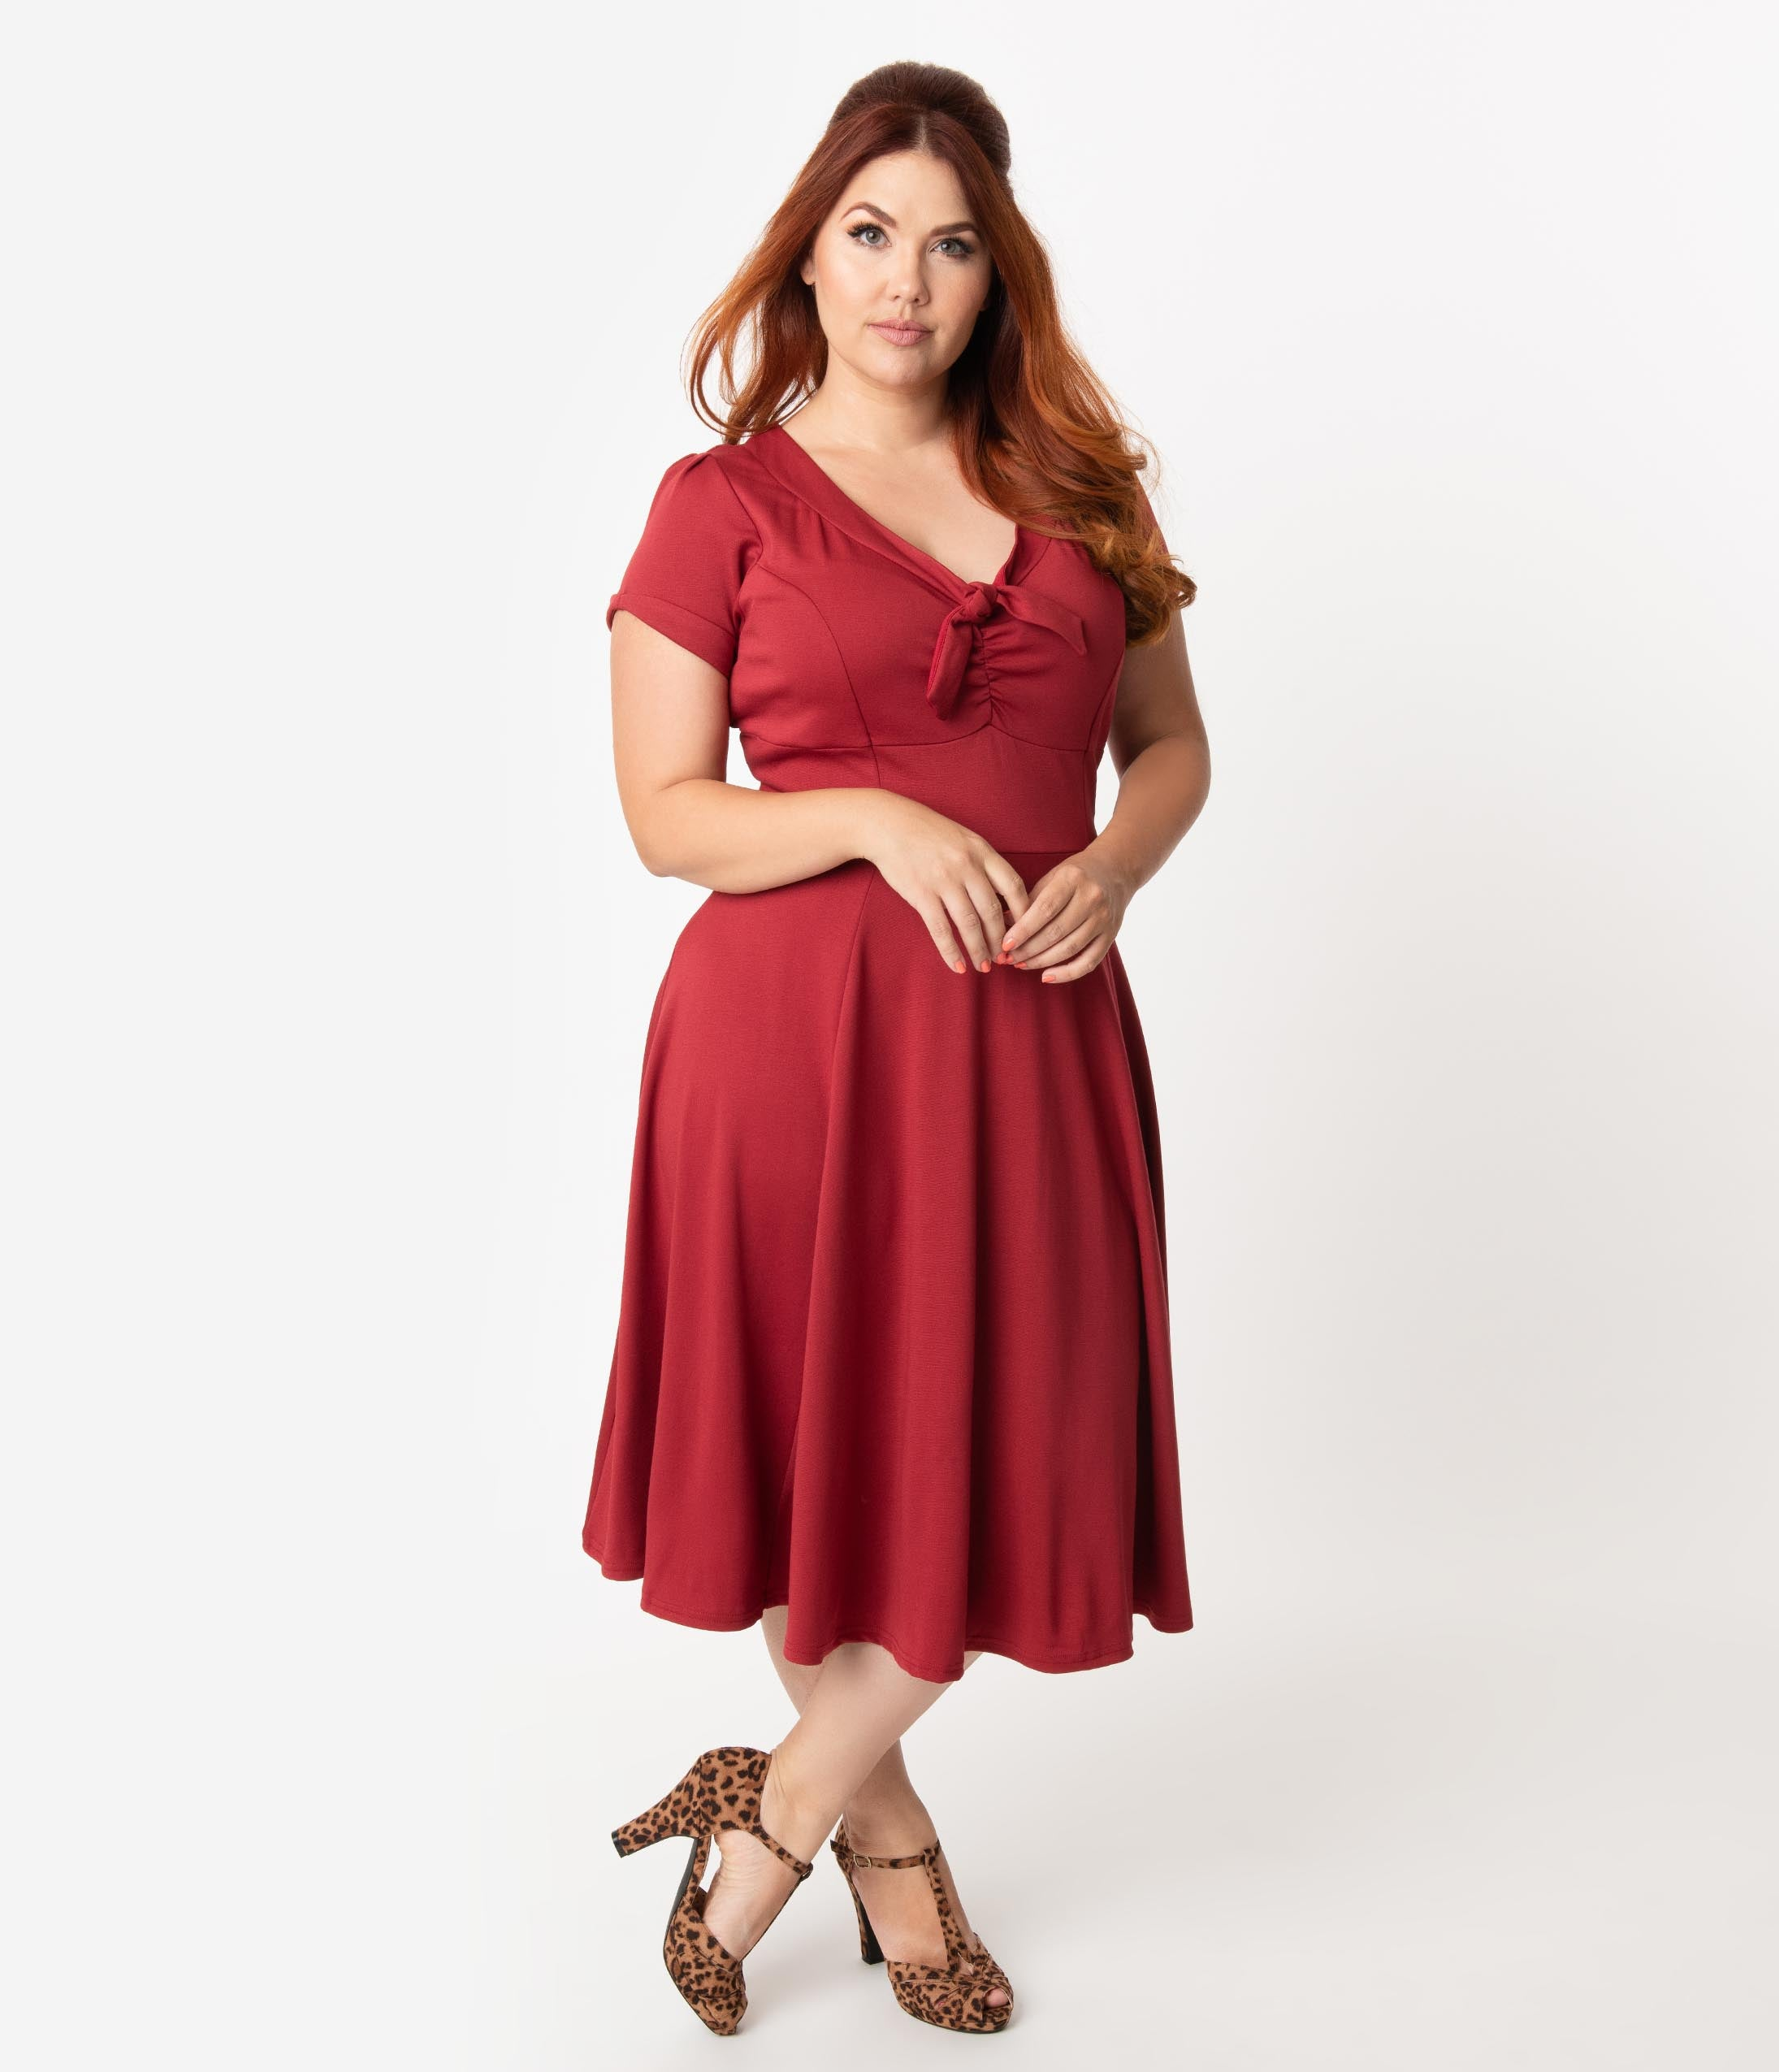 1940s Fashion Advice for Short Women Unique Vintage Plus Size 1940S Style Burgundy Knit Short Sleeve Natalie Swing Dress $88.00 AT vintagedancer.com